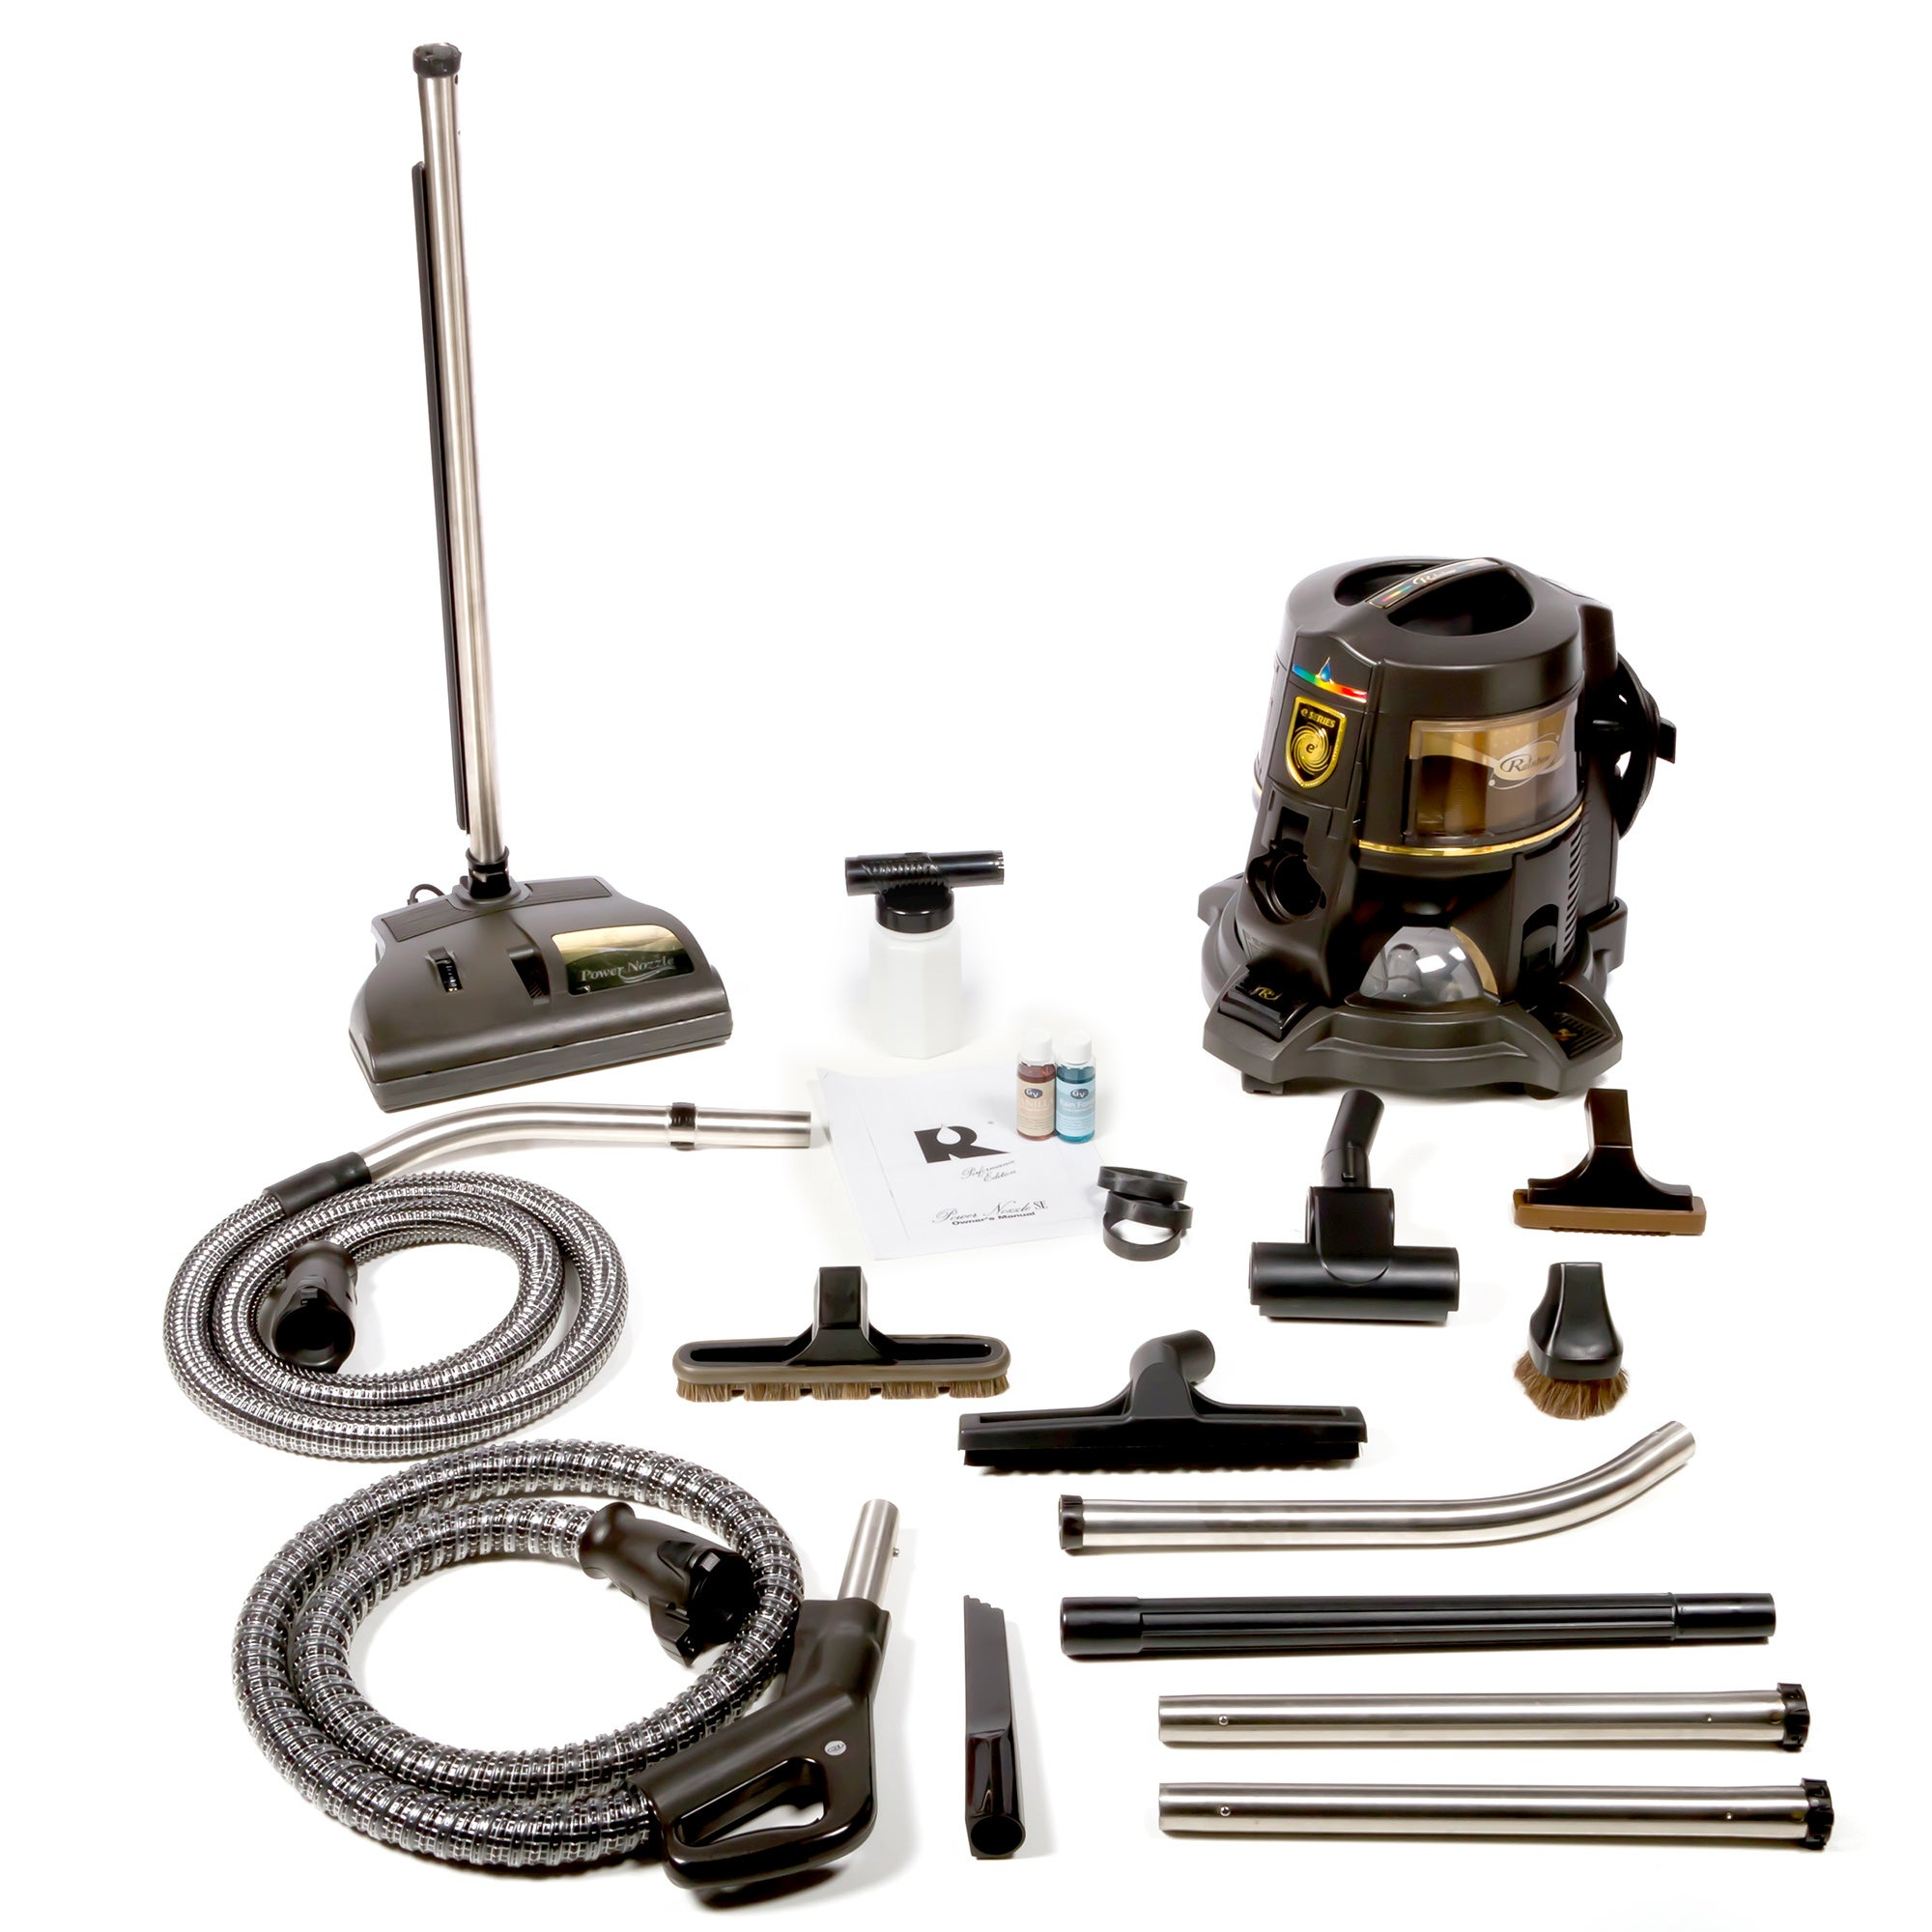 E Series Hepa E2 Gold 2-speed Rainbow Canister Vacuum Cle...